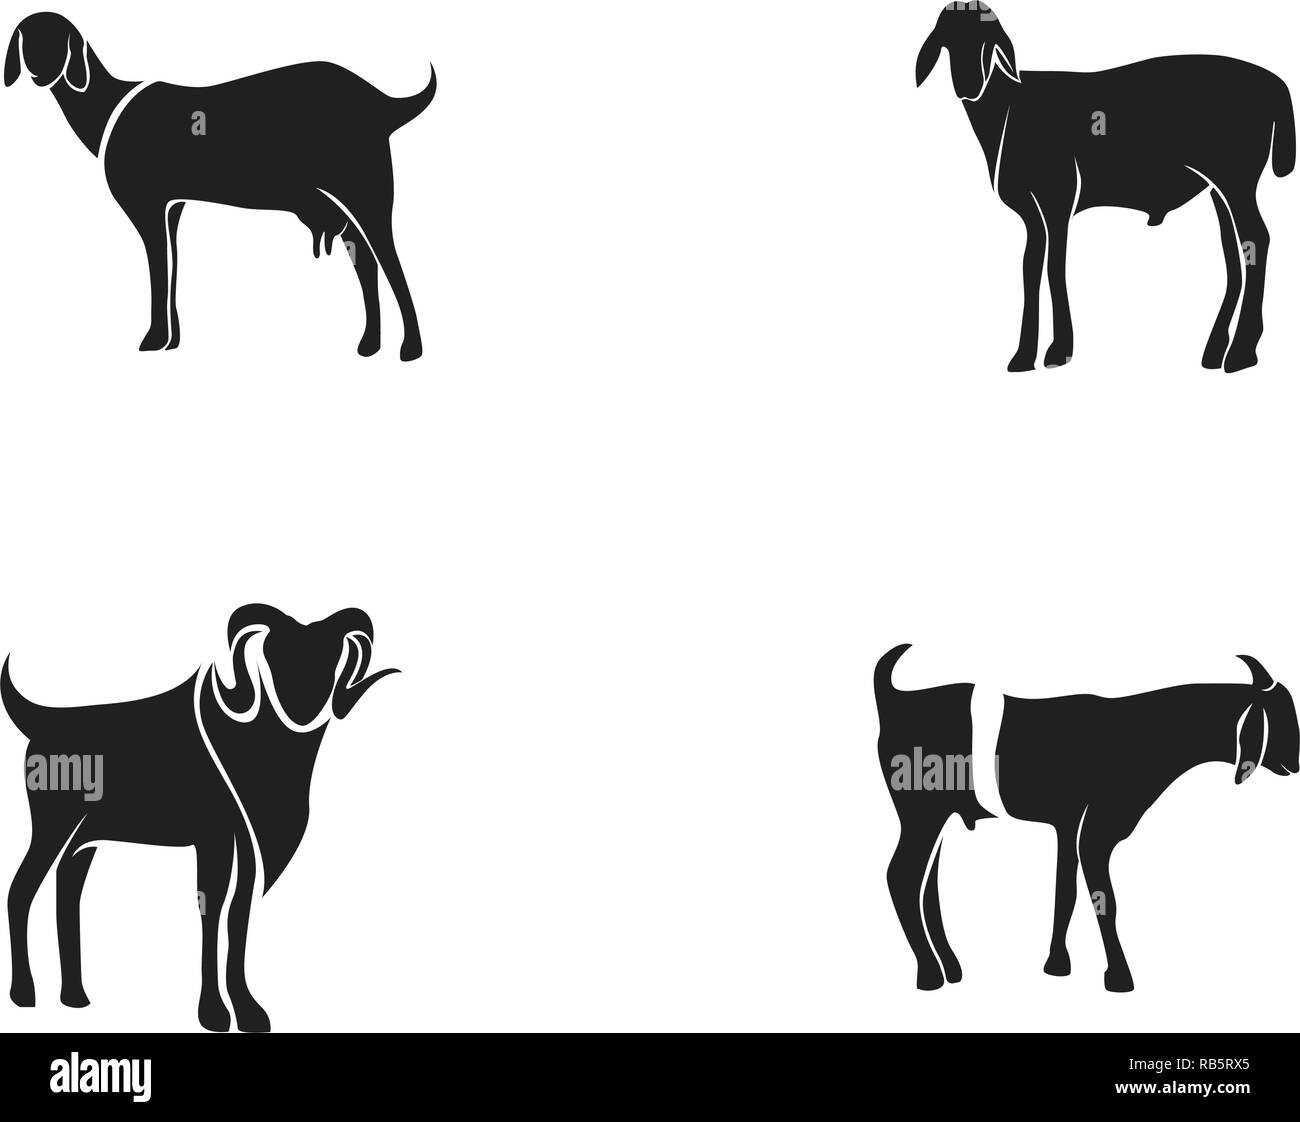 Goat black animals vector logo and symbol template - Stock Image